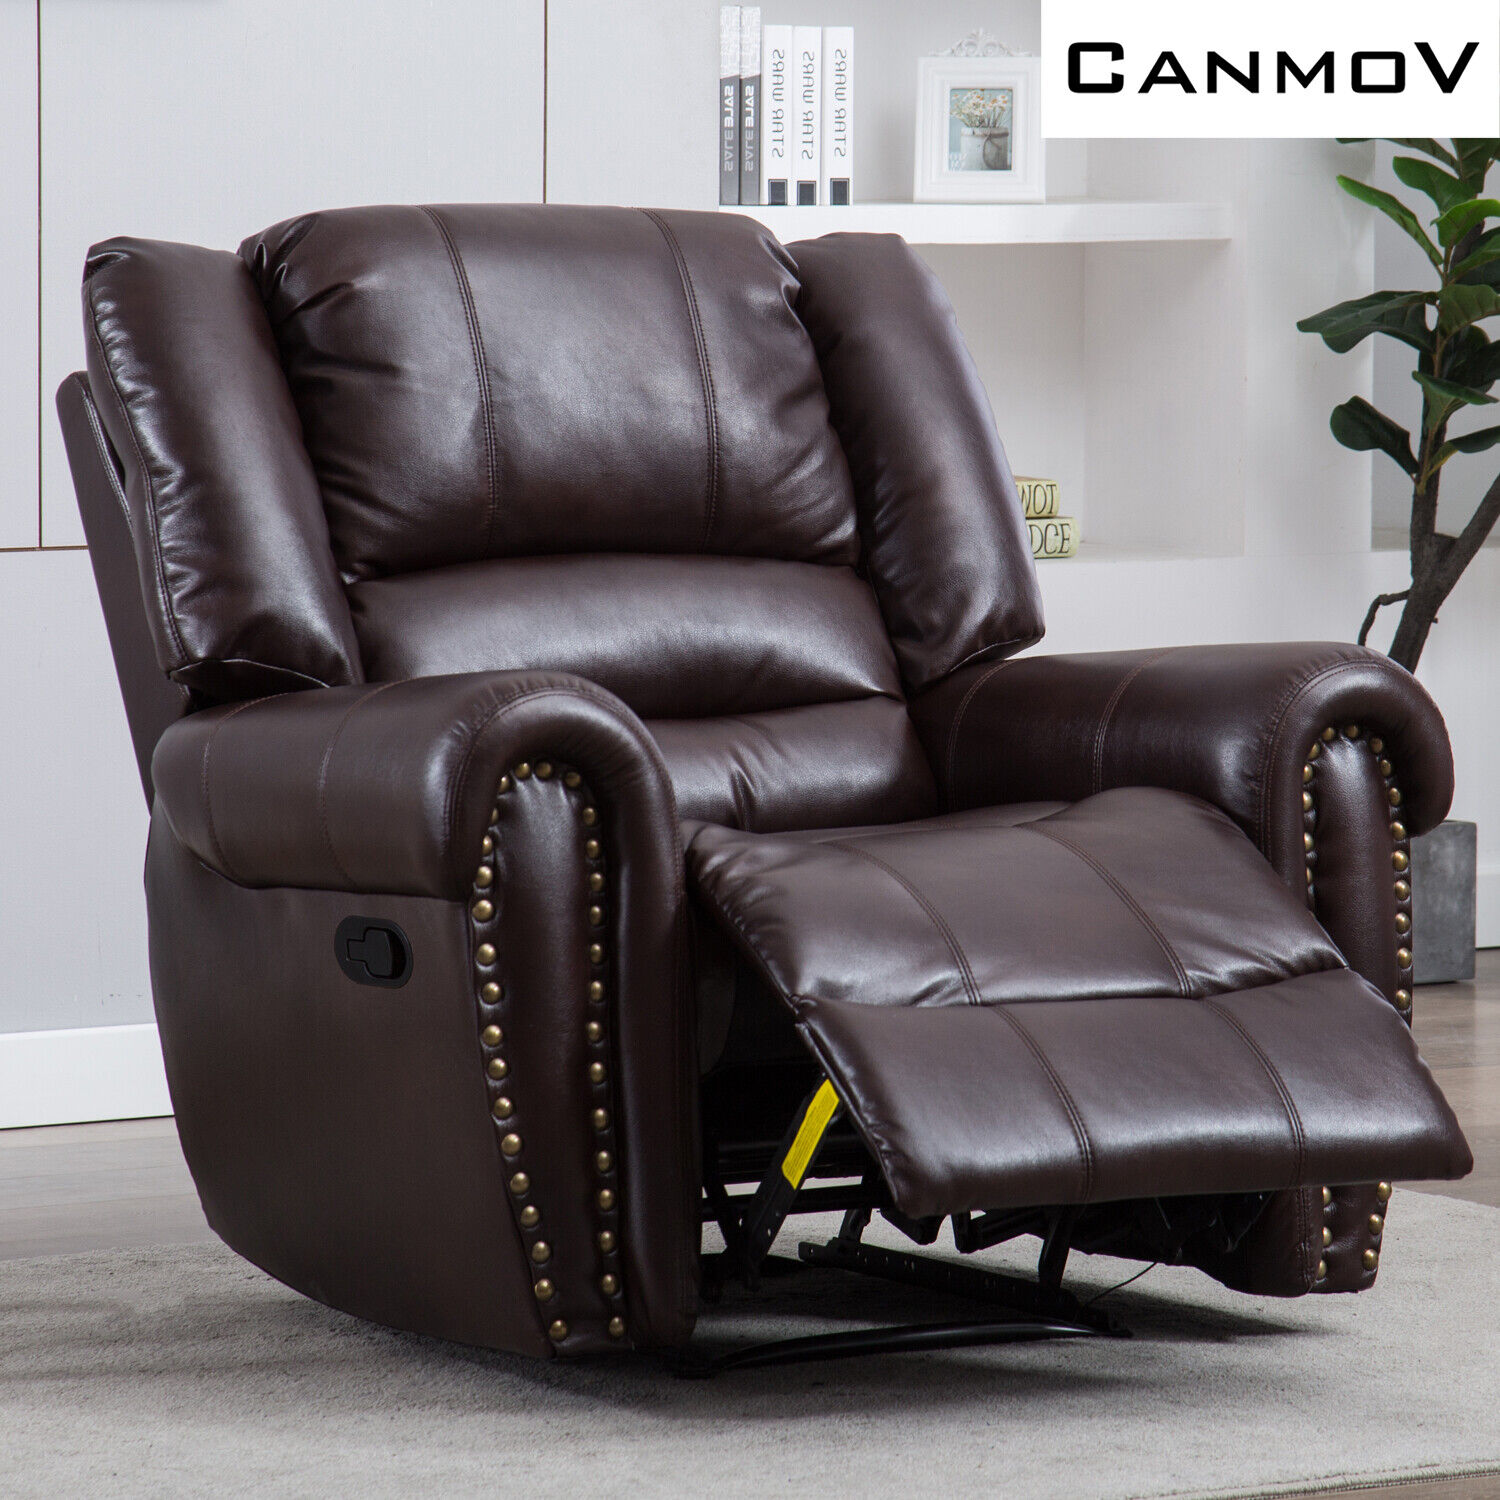 Brown Faux Leather Manual Recliner Chair Overstuffed Backres